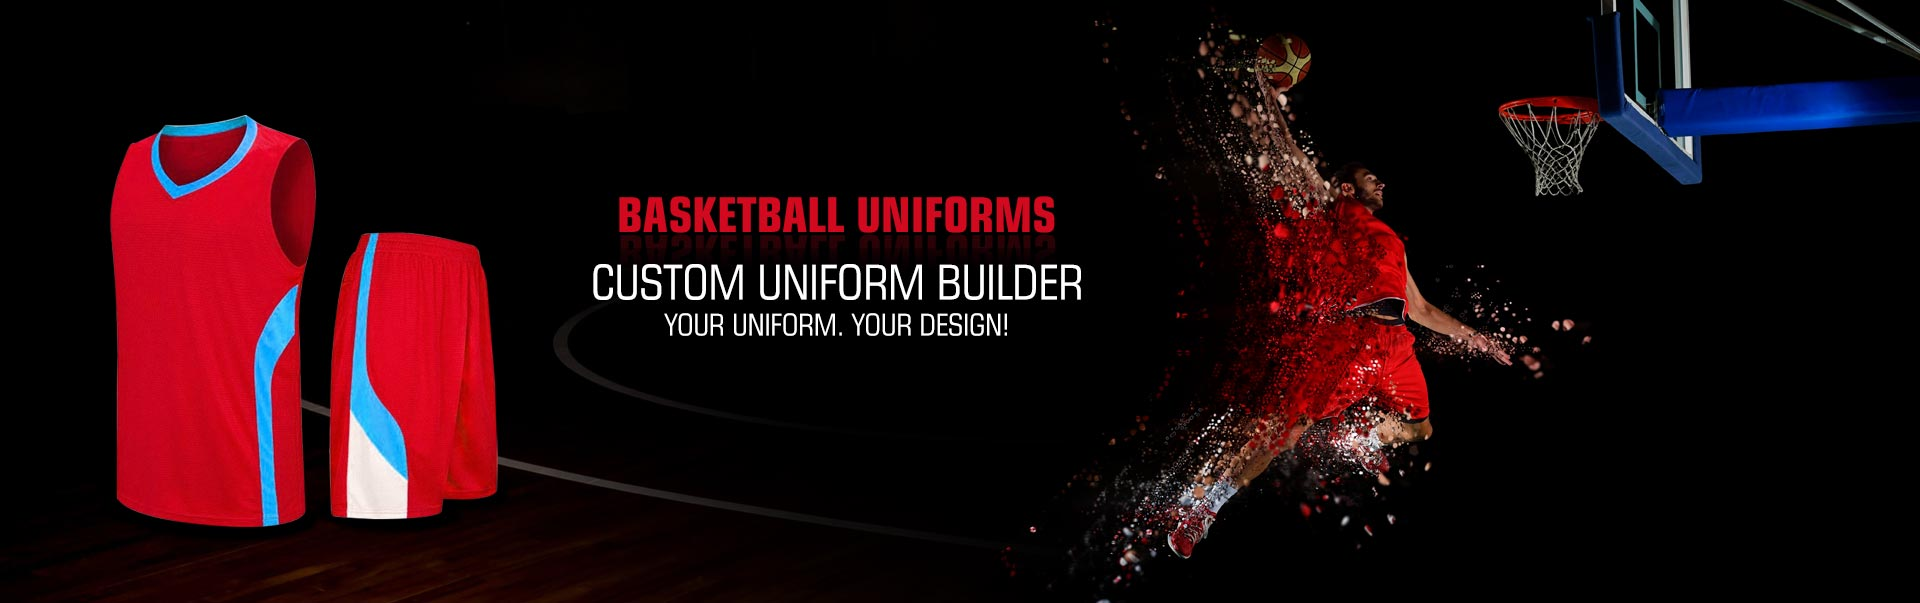 Basketball Uniforms Wholesaler, Suppliers in Frisco